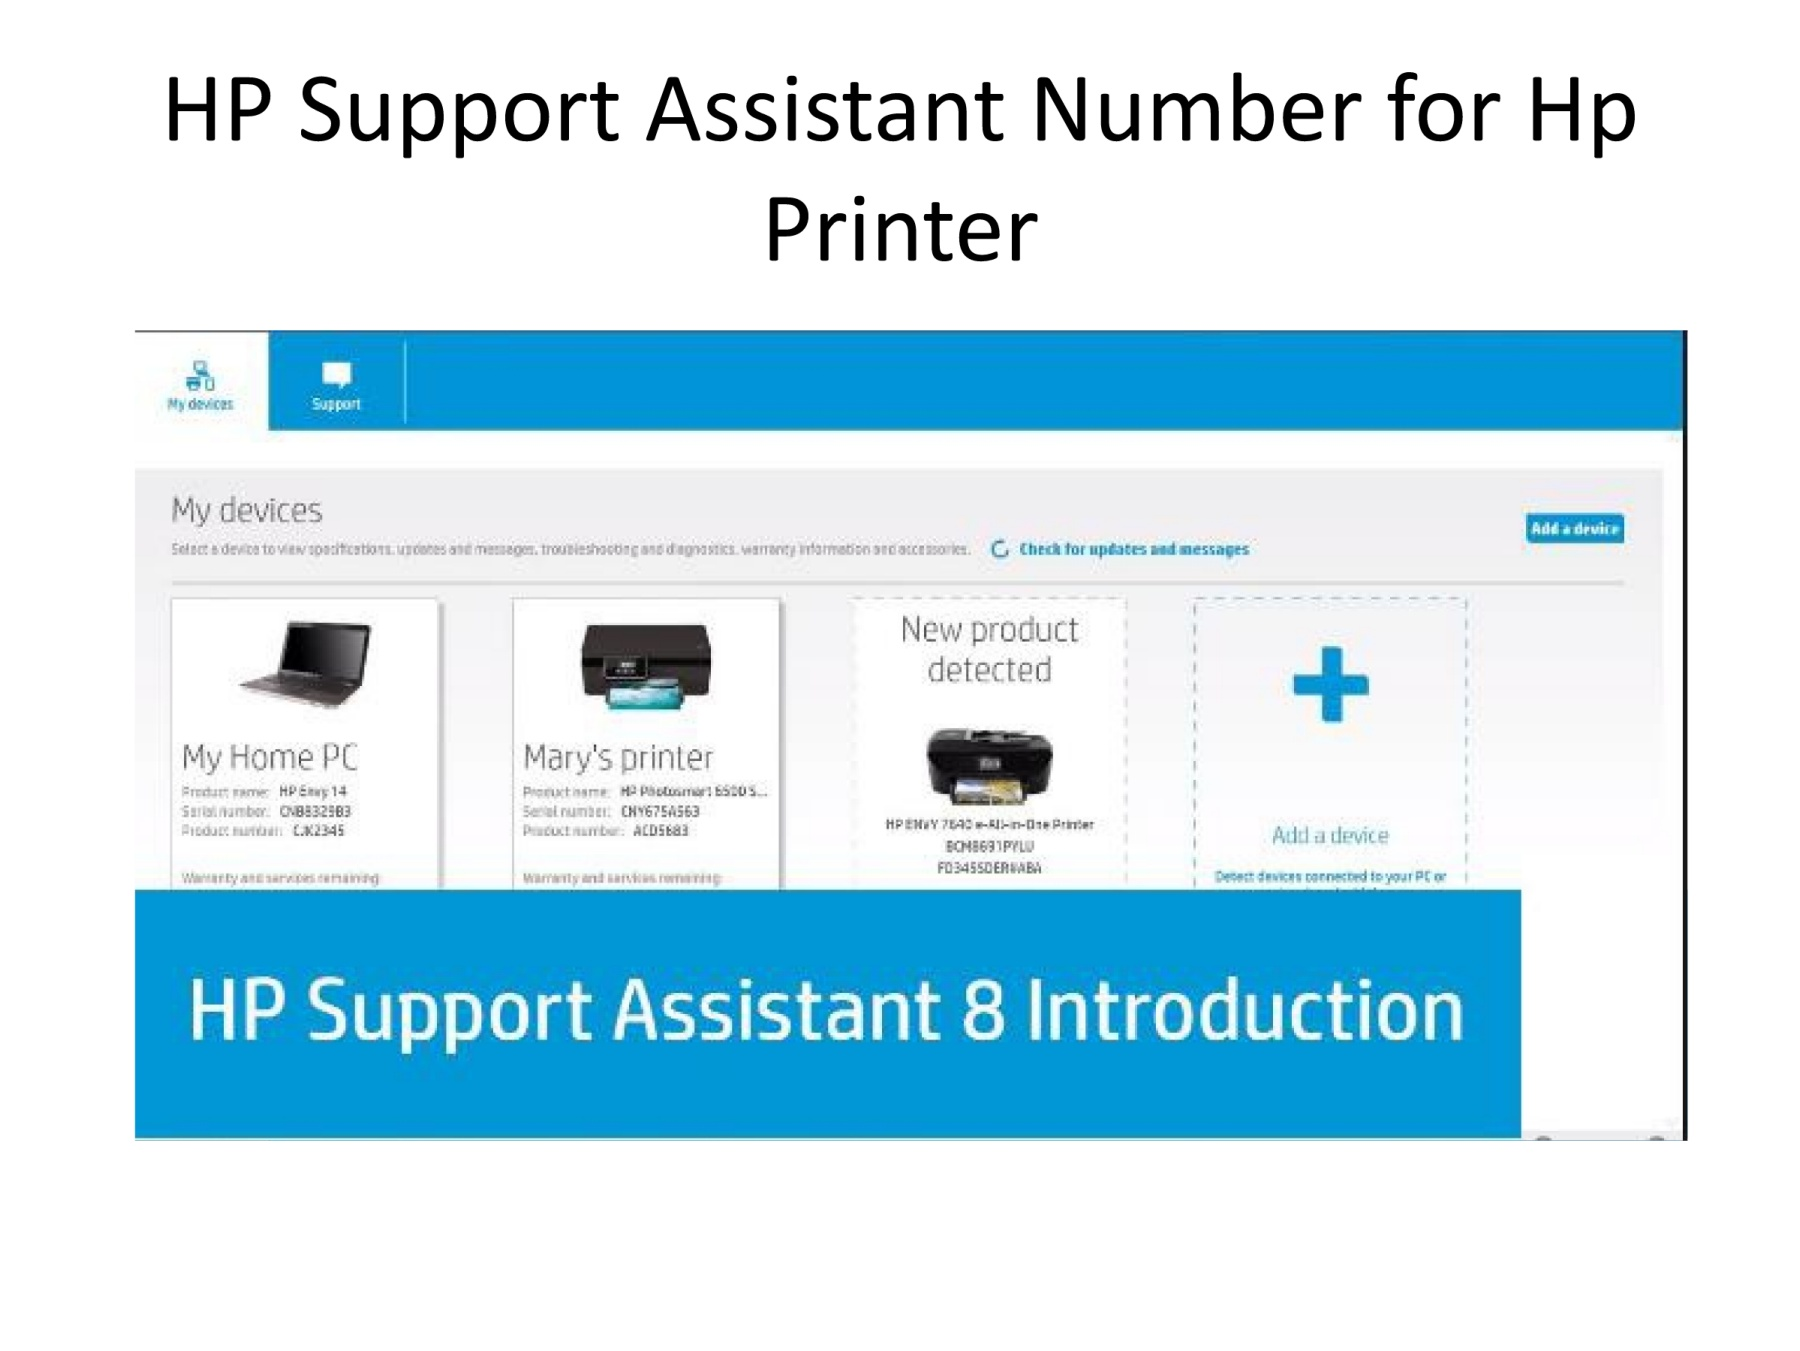 Hp Printer Assistant Number for Quick Customer Support